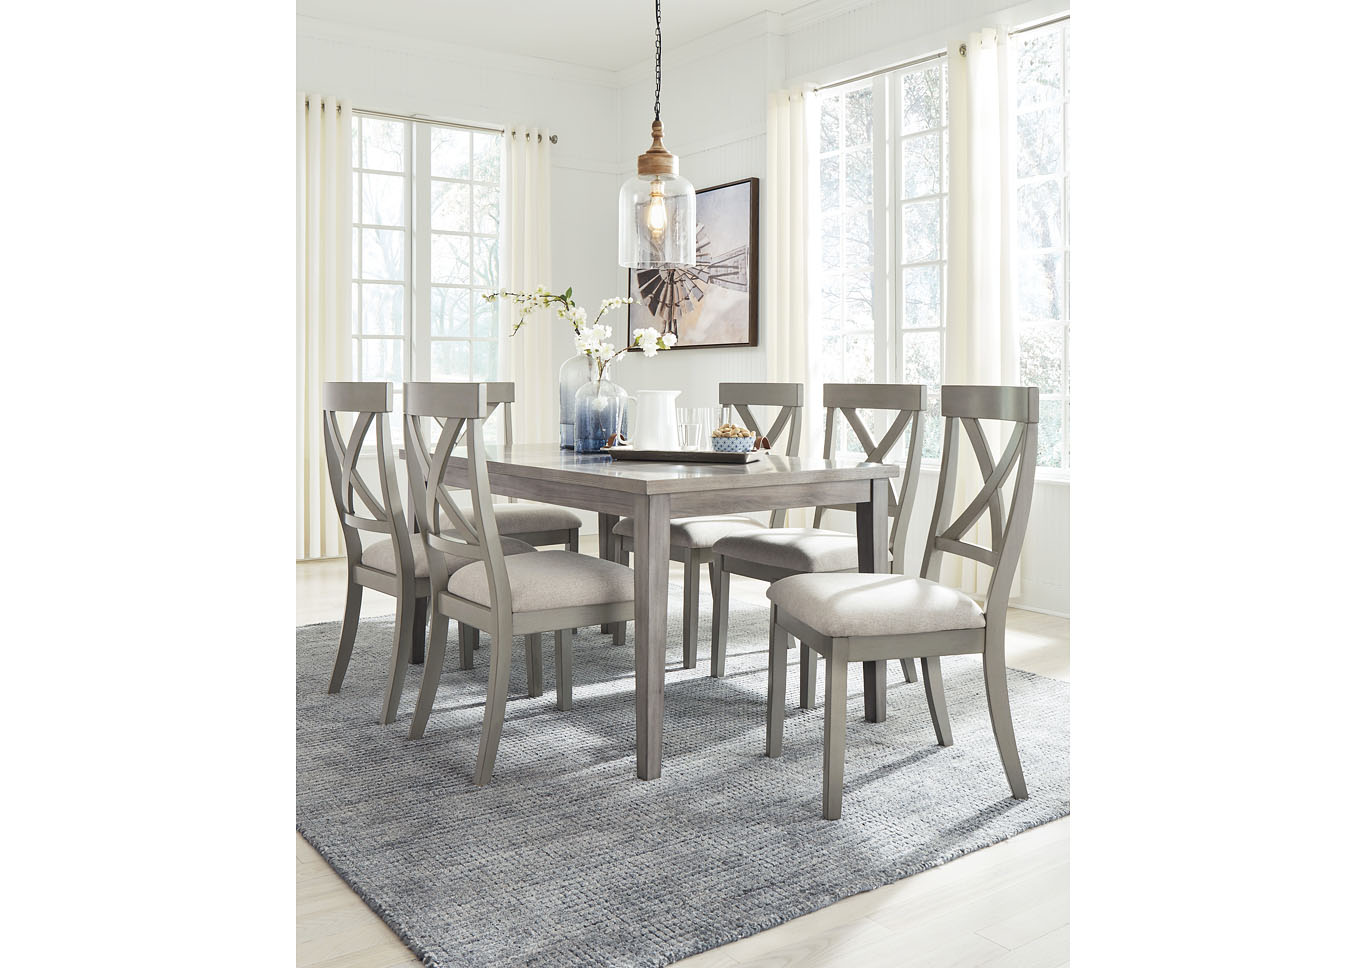 Parellen Gray Dining Table,Signature Design By Ashley